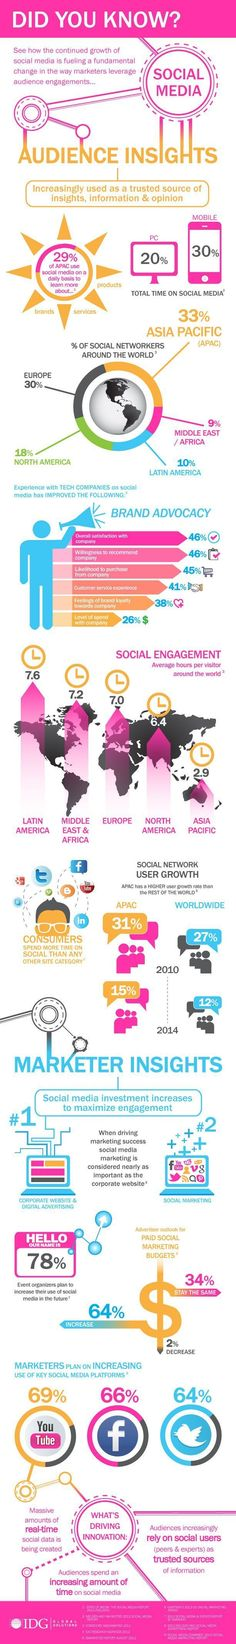 Infographic: Marketer and Audience Insights on Social Media Worldwide